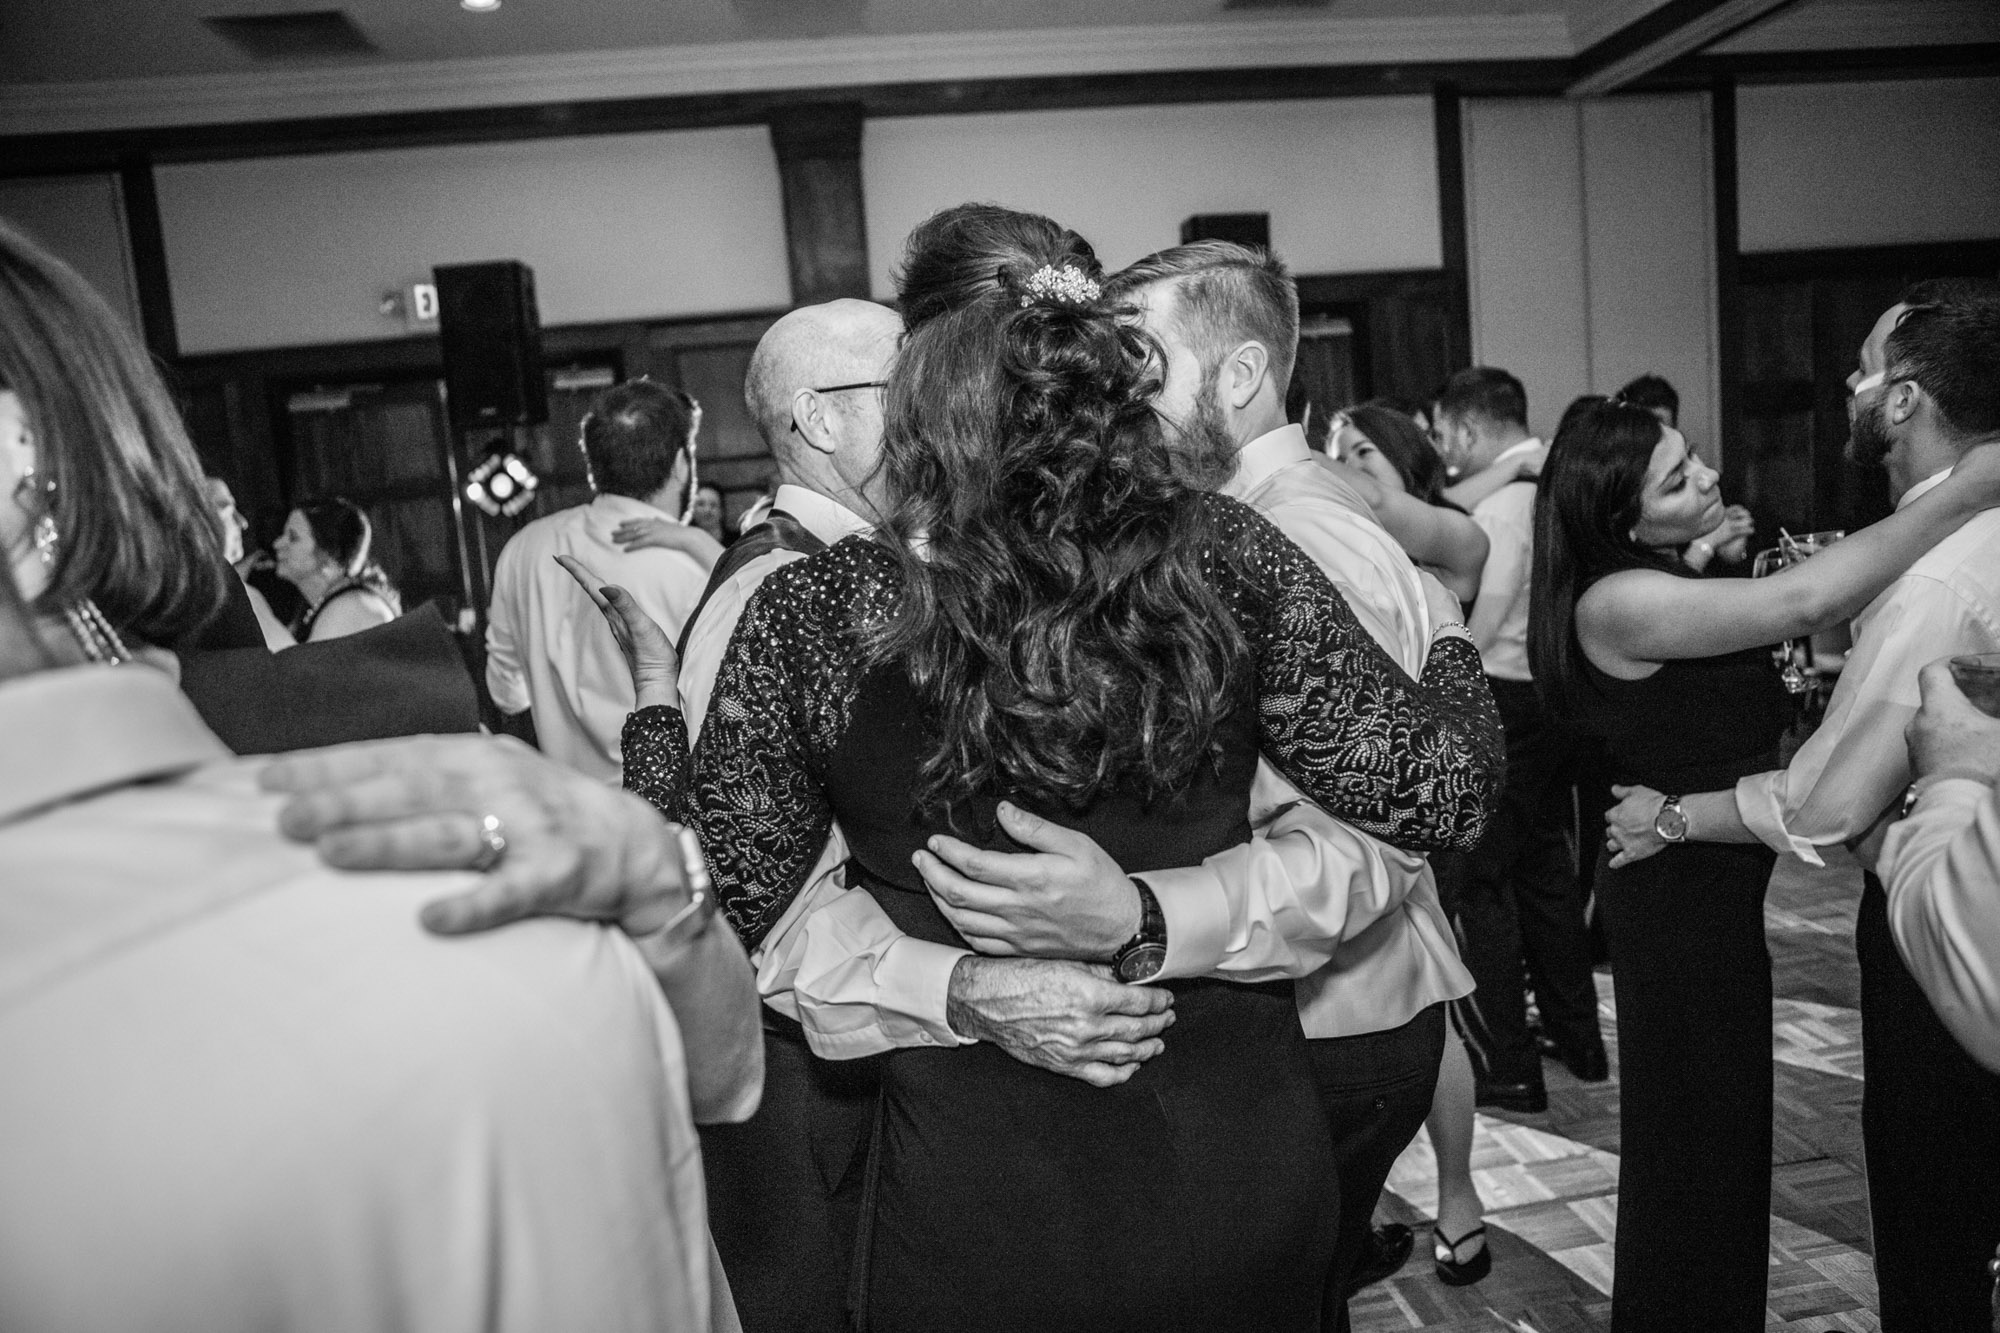 scranton_wedding_photographer_lettieri_pa (15 of 15).jpg